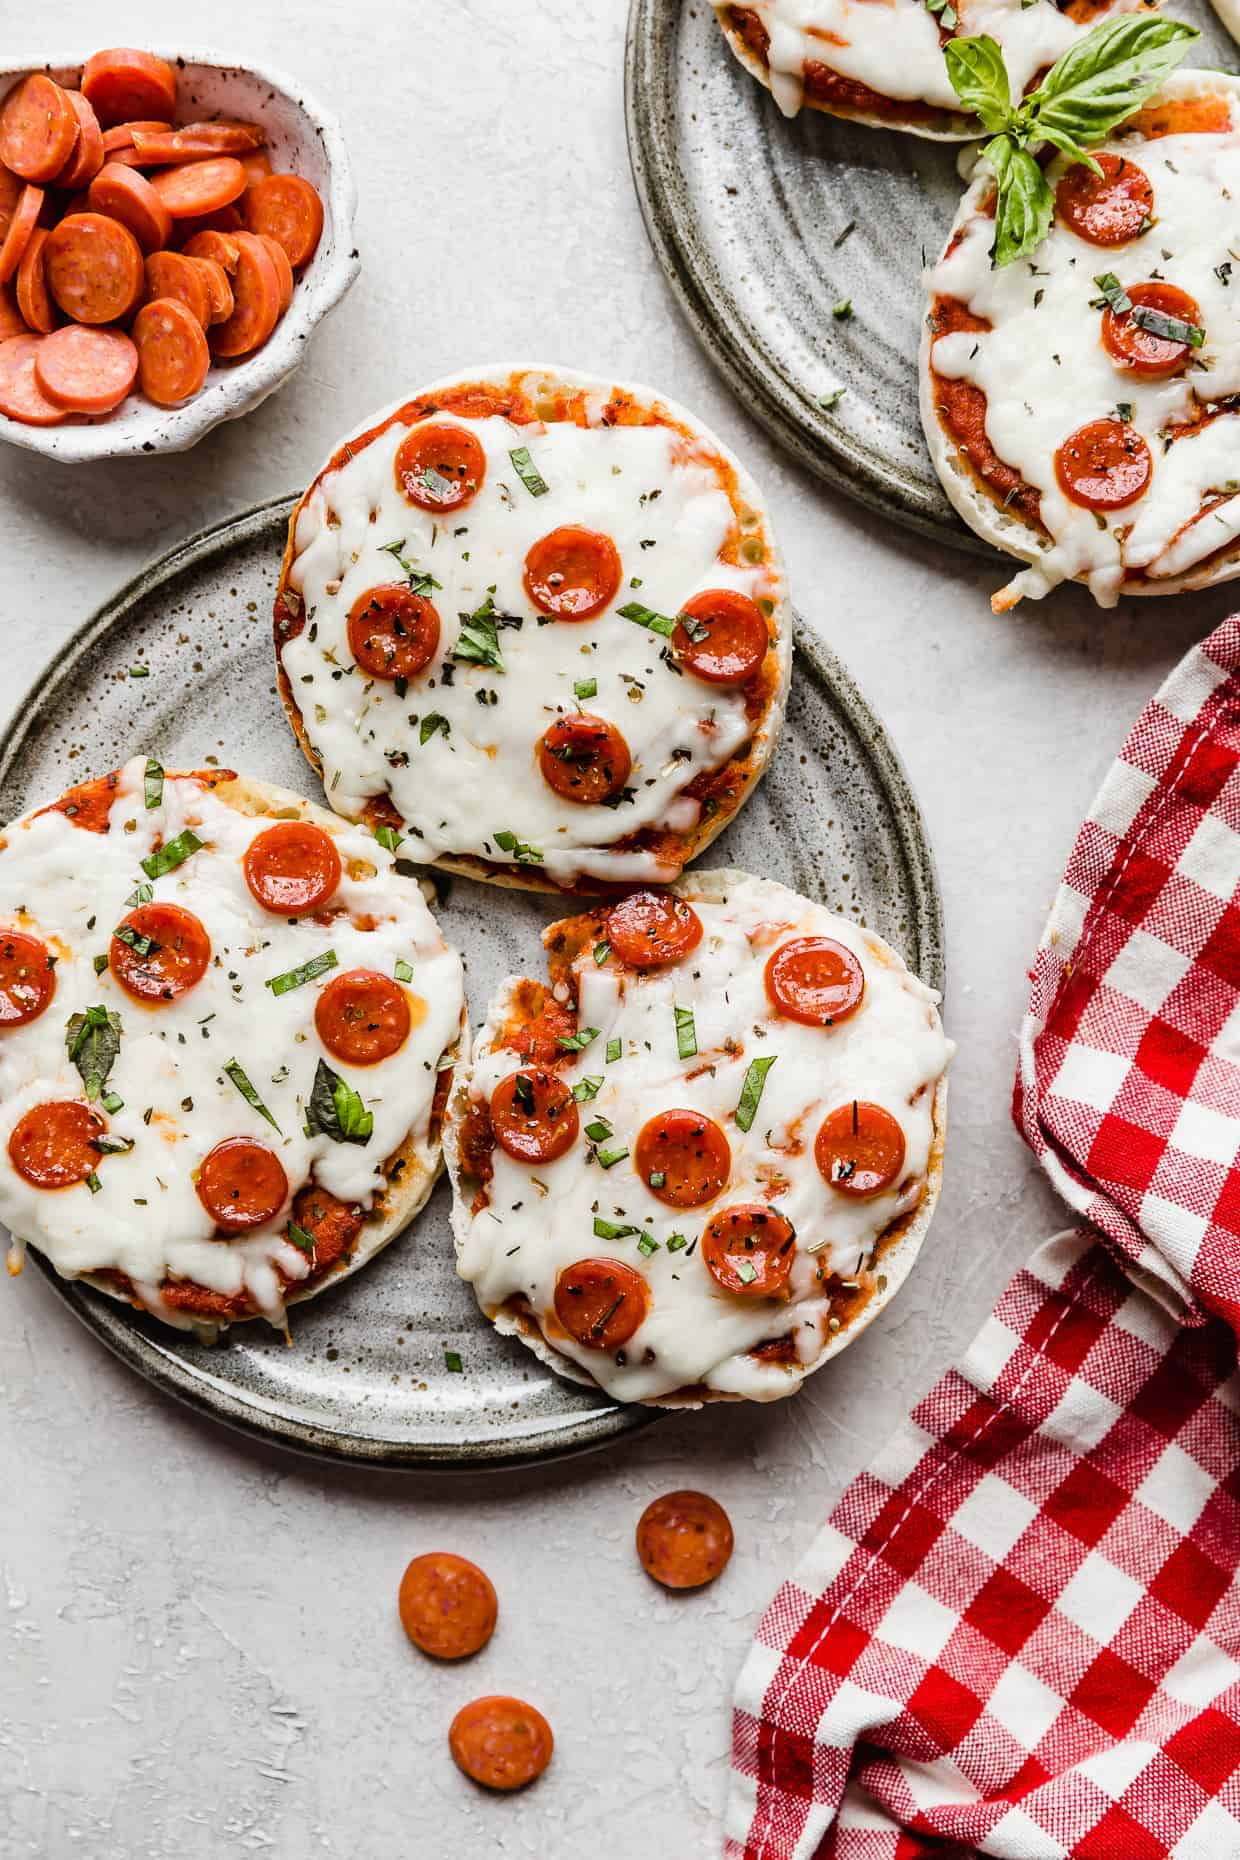 Three English muffin pizzas topped with mini pepperoni's on a gray plate.